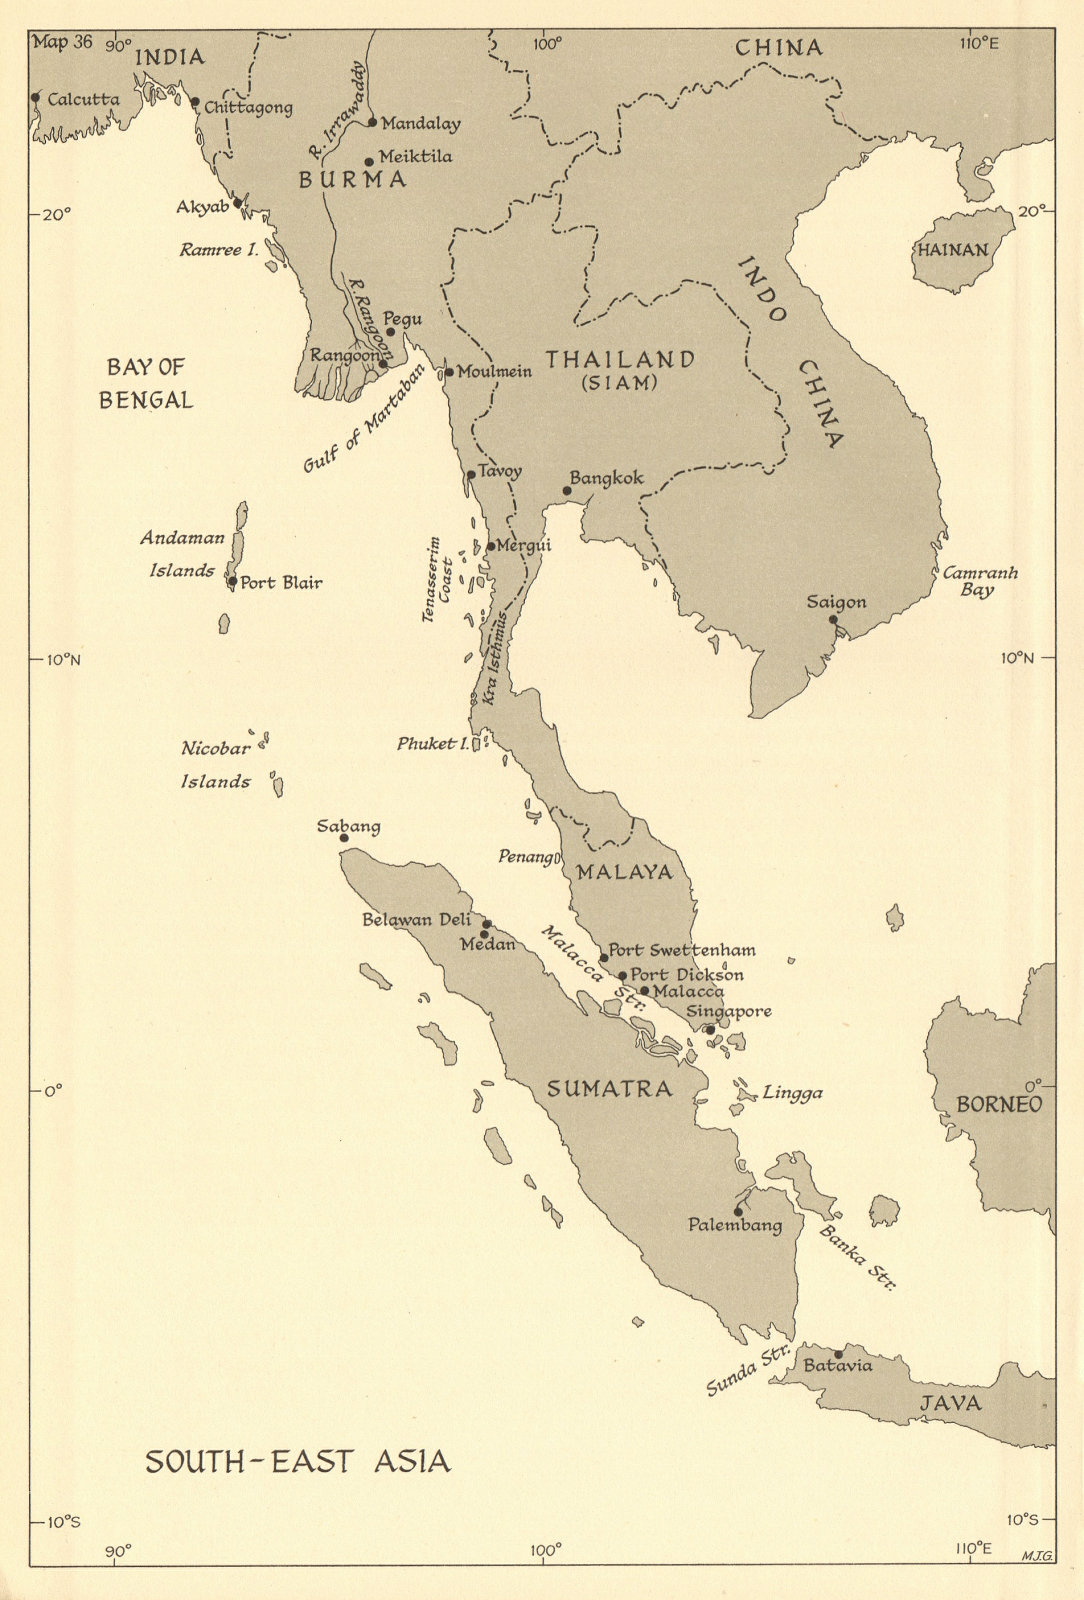 Associate Product South-East Asia. Indochina in 1944. Ports. World War 2 naval campaigns 1961 map